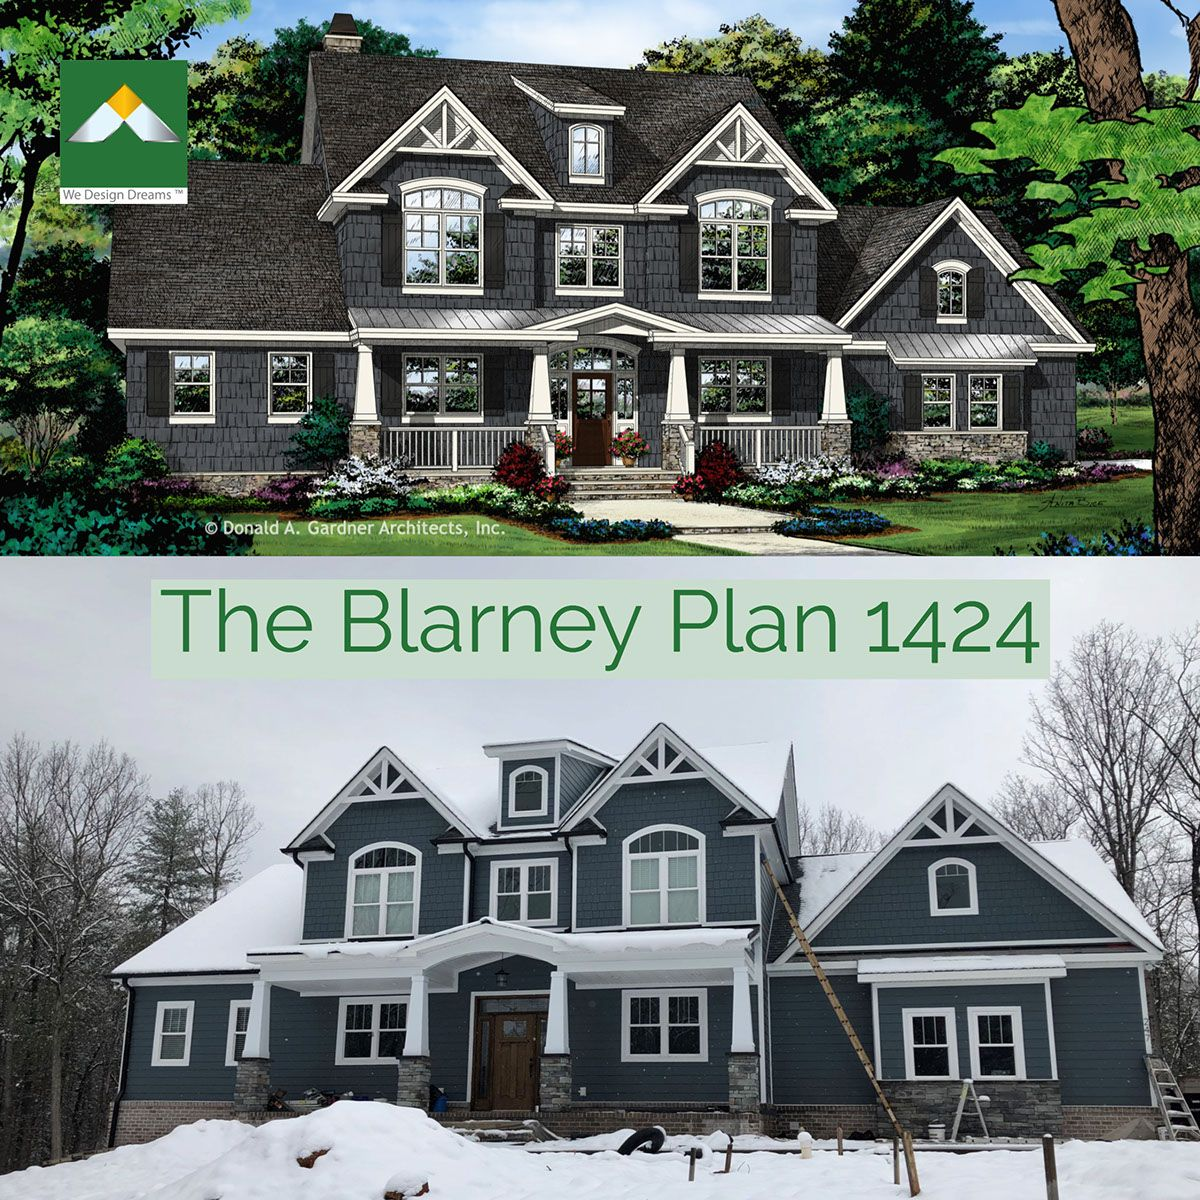 The Blarney Plan 1424 Is Almost Complete Wedesigndreams Dongardnerarchitects Colonial House Plans House Plans House Plans Farmhouse